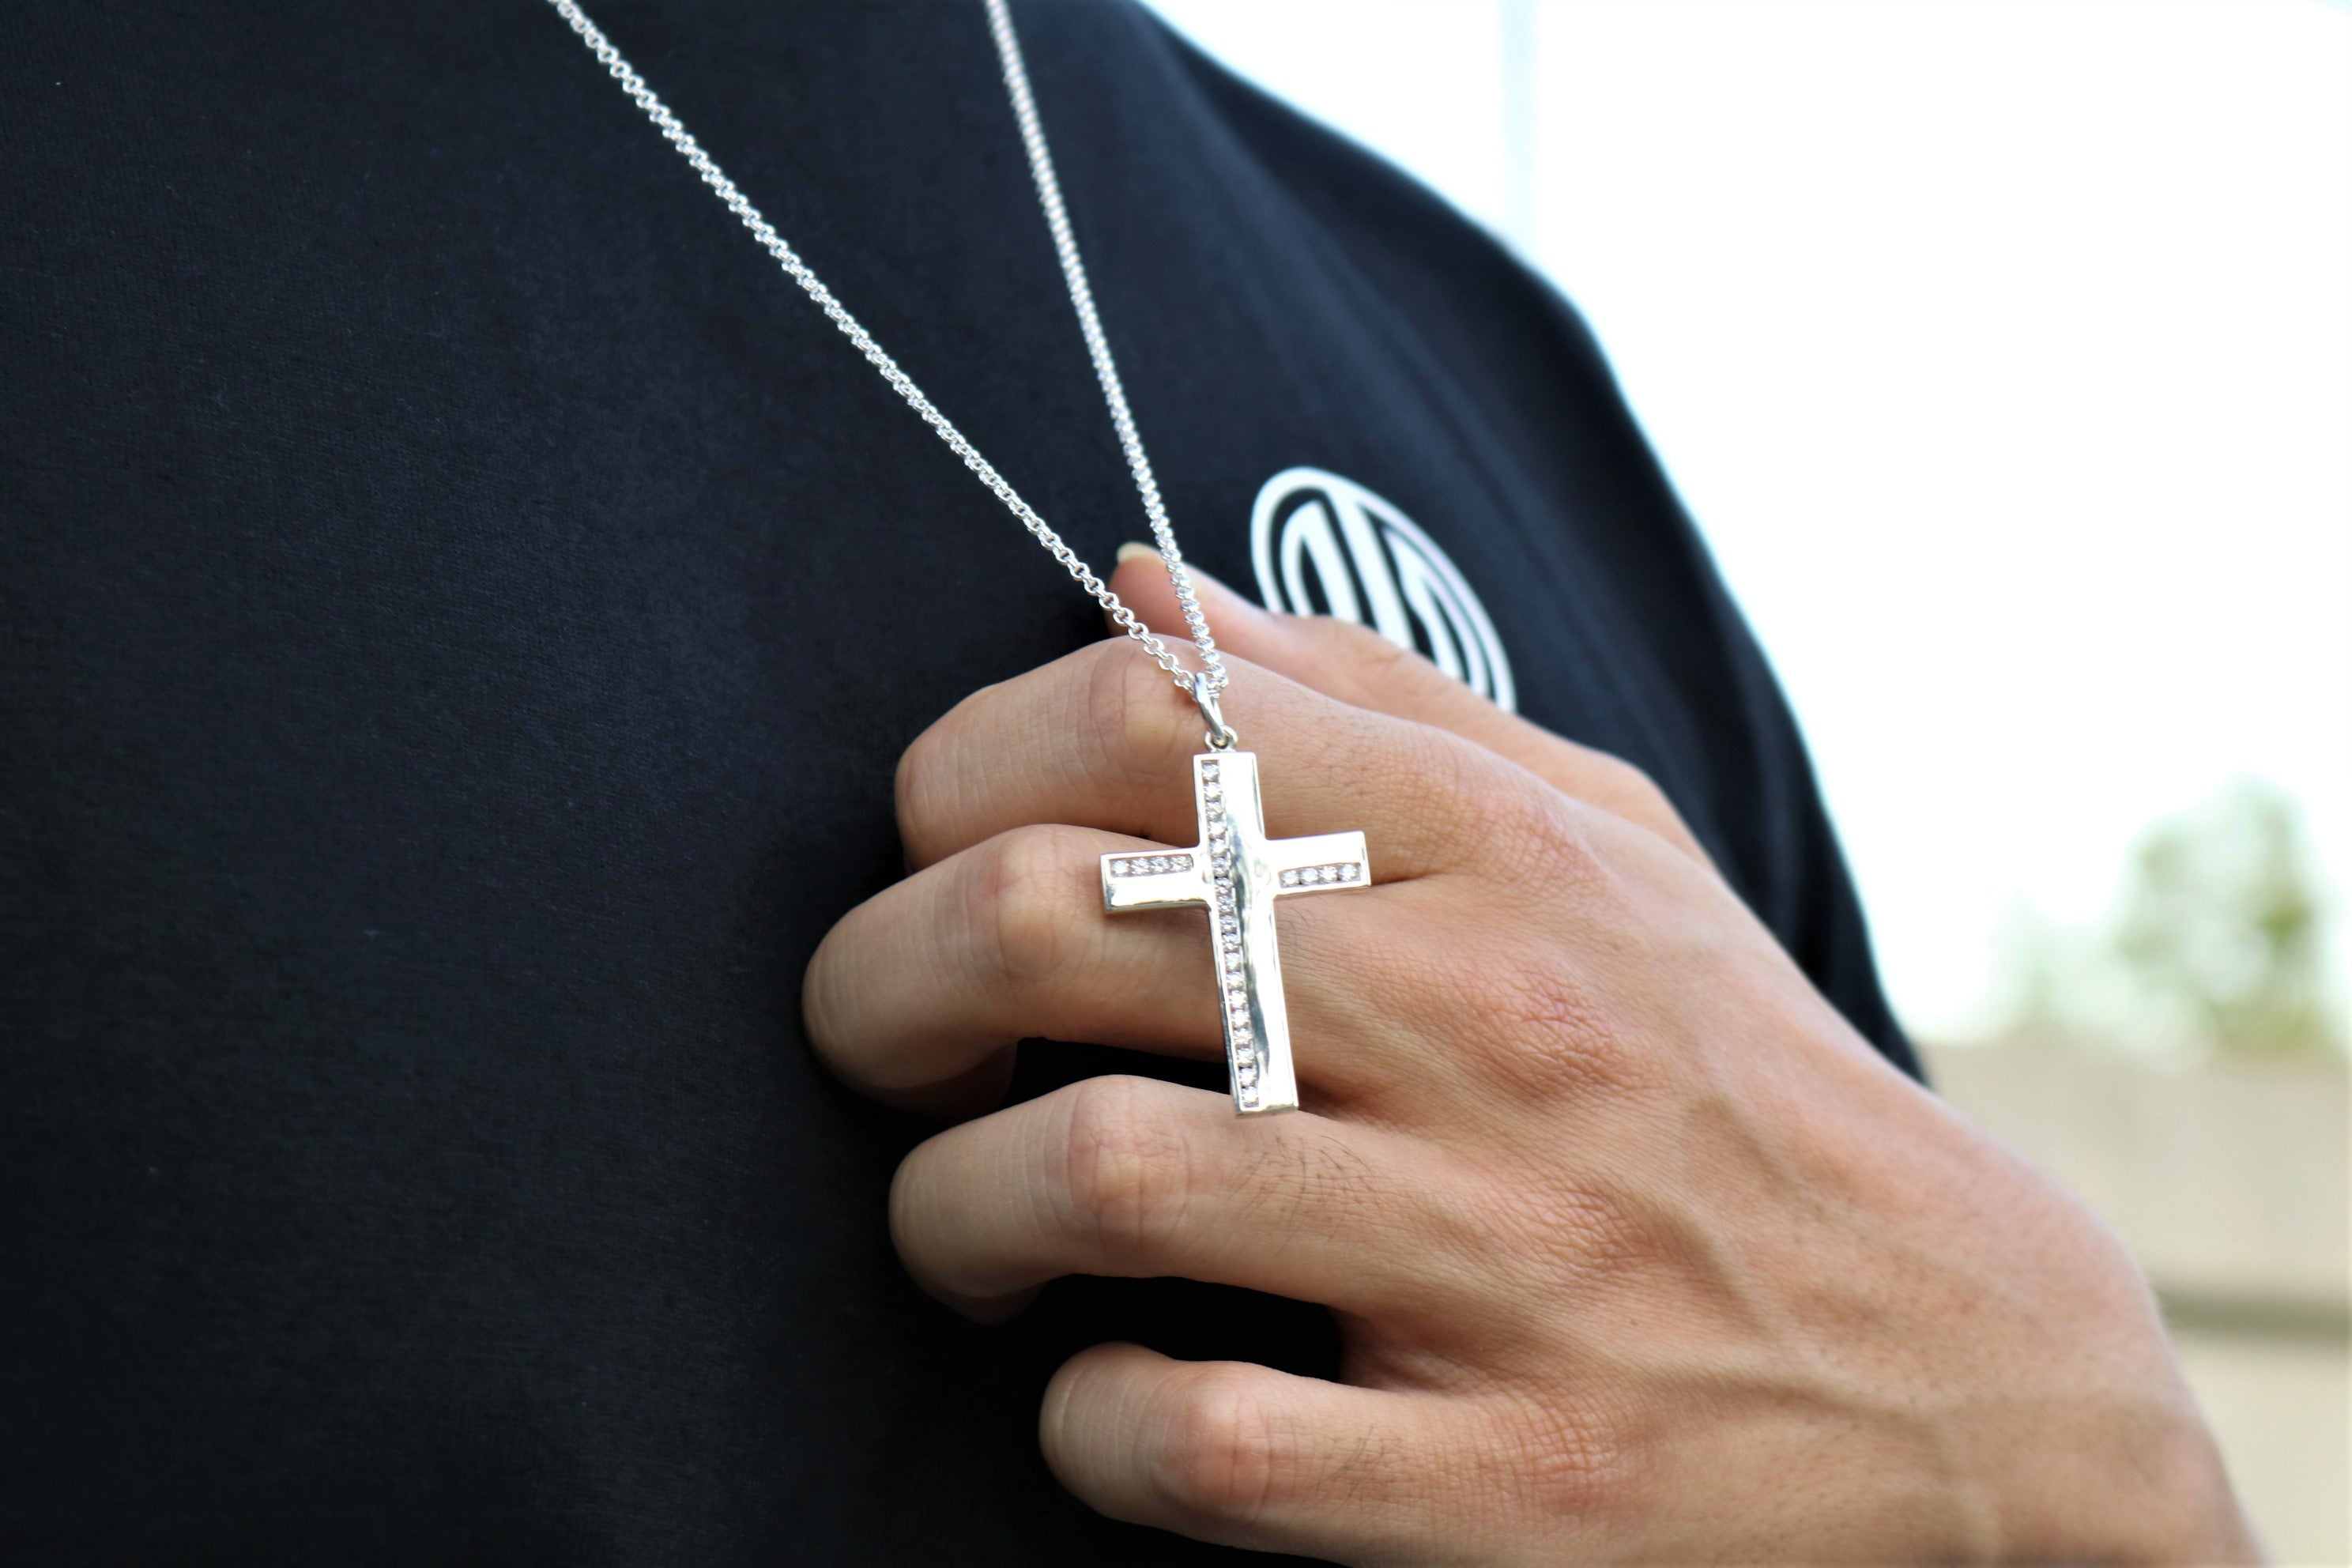 The W Brothers Premium Grade A 925 Sterling Silver Celestial Cross. Our Celestial Cross is a contemporary, modern-generation designed Cross crafted for the symbol of the new millennium. Perfect for a fashionable statement for men and women's jewelry accessory. Available at www.thewbros.com